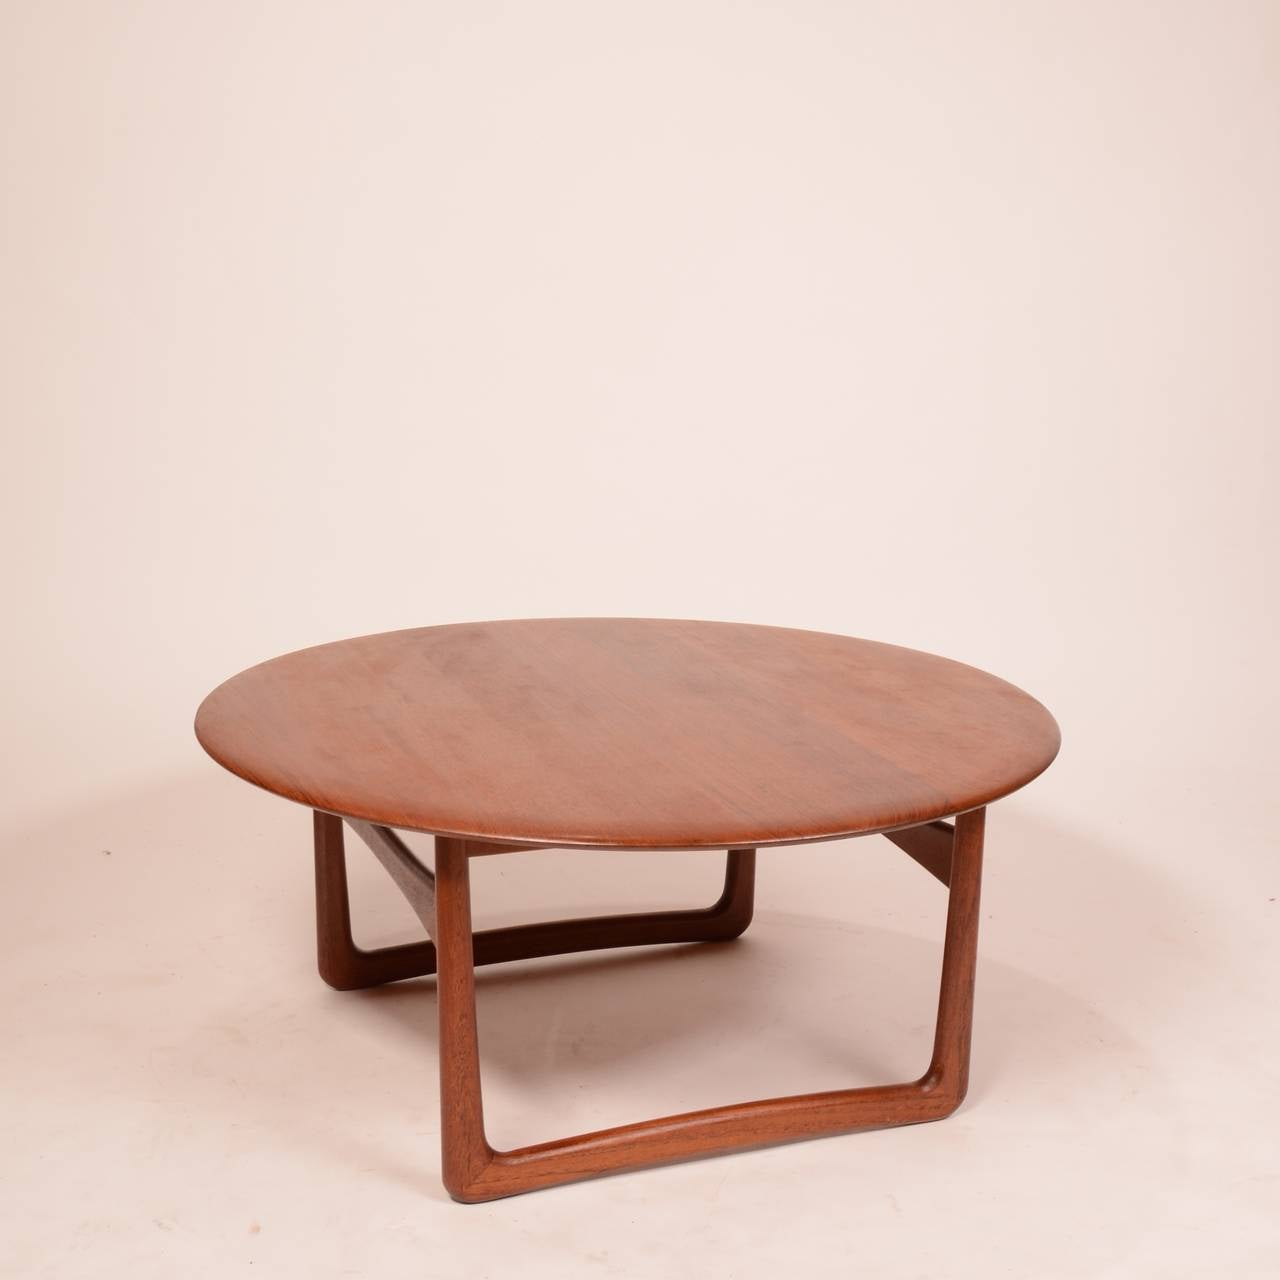 Solid Teak Danish Modern Round Coffee Table by Povl Dinesen for